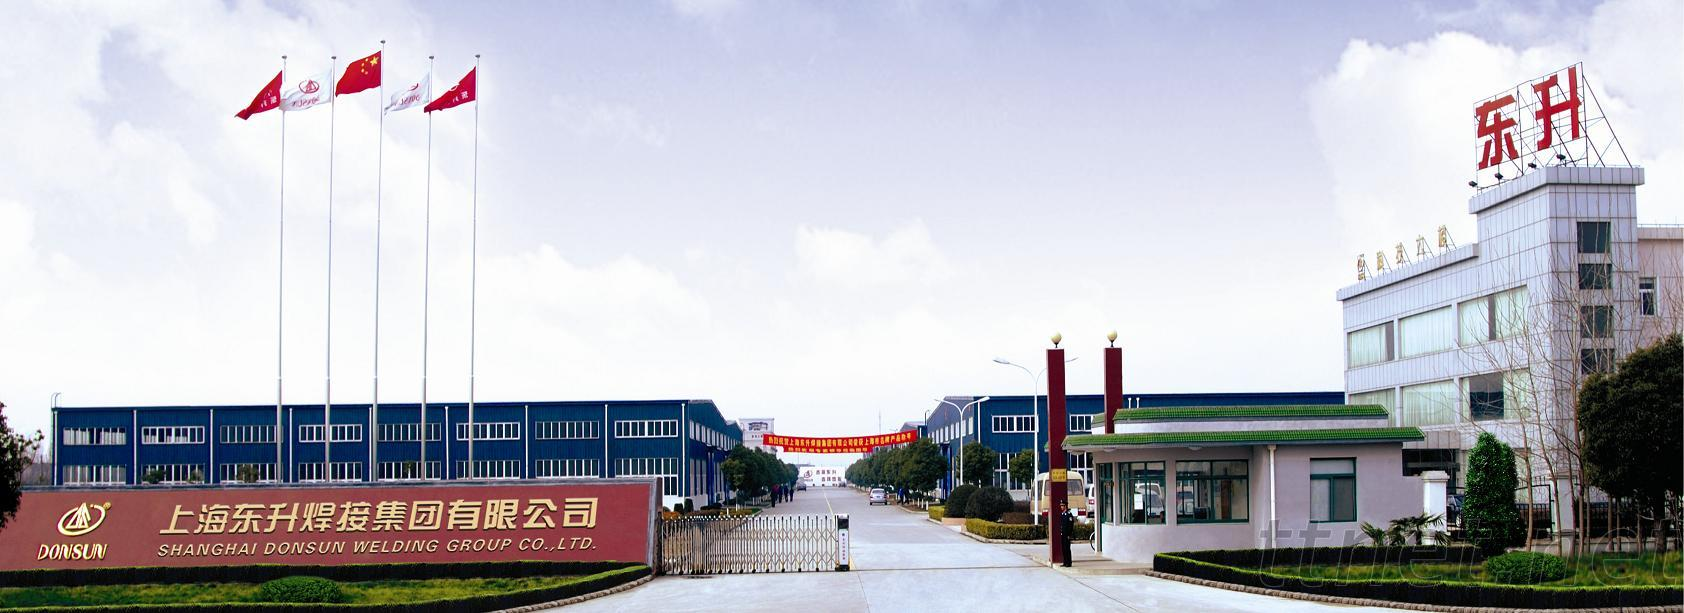 Shanghai Donsun Welding Group Co., Ltd